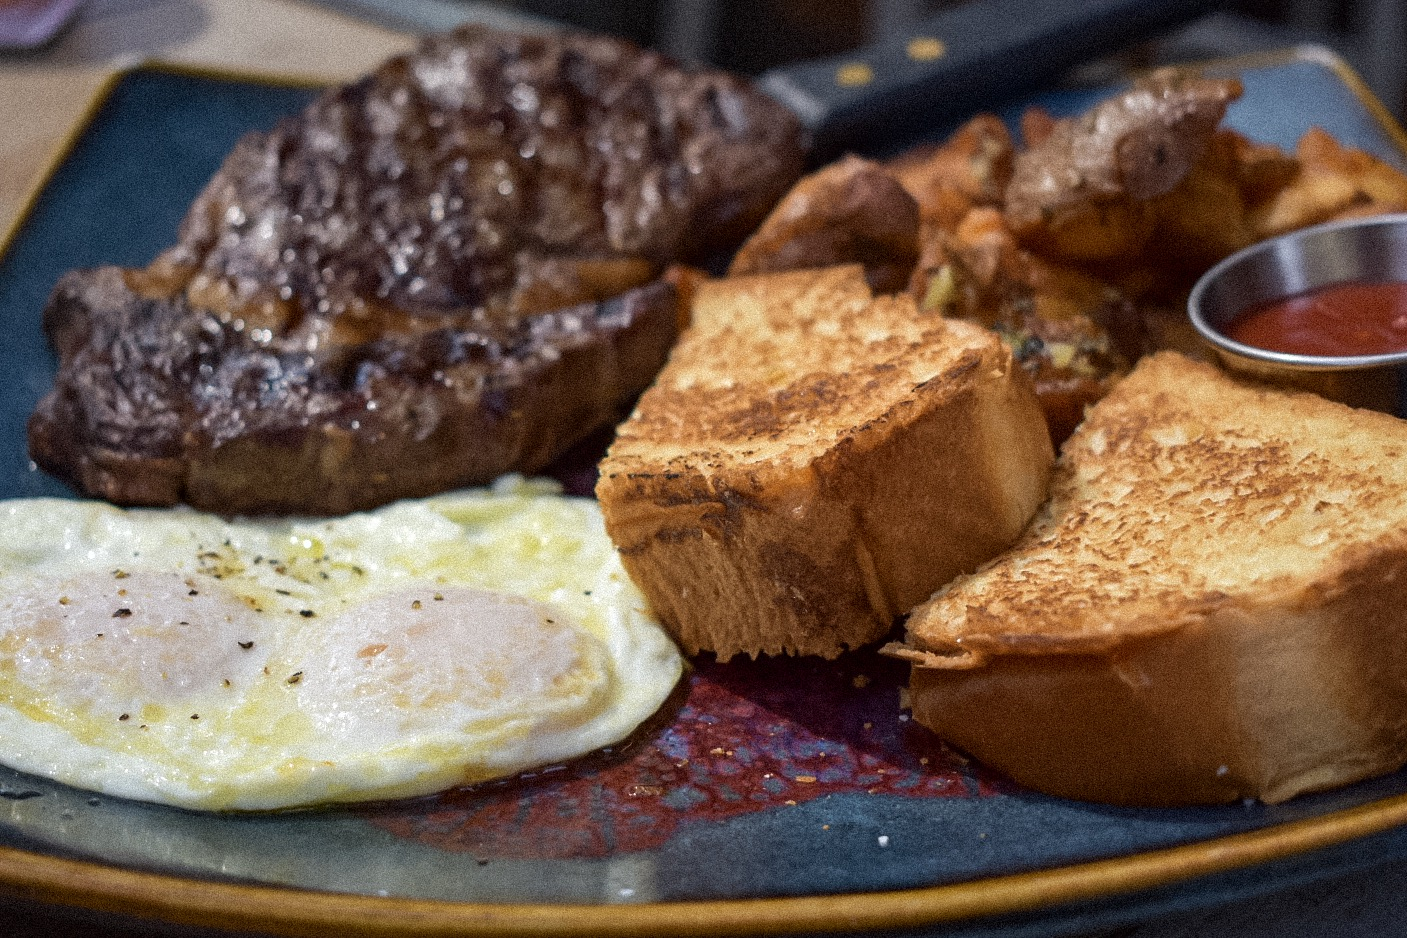 steak and eggs brunchfaced north count brunch biergarden encinitas bloody mary obsessed.jpg